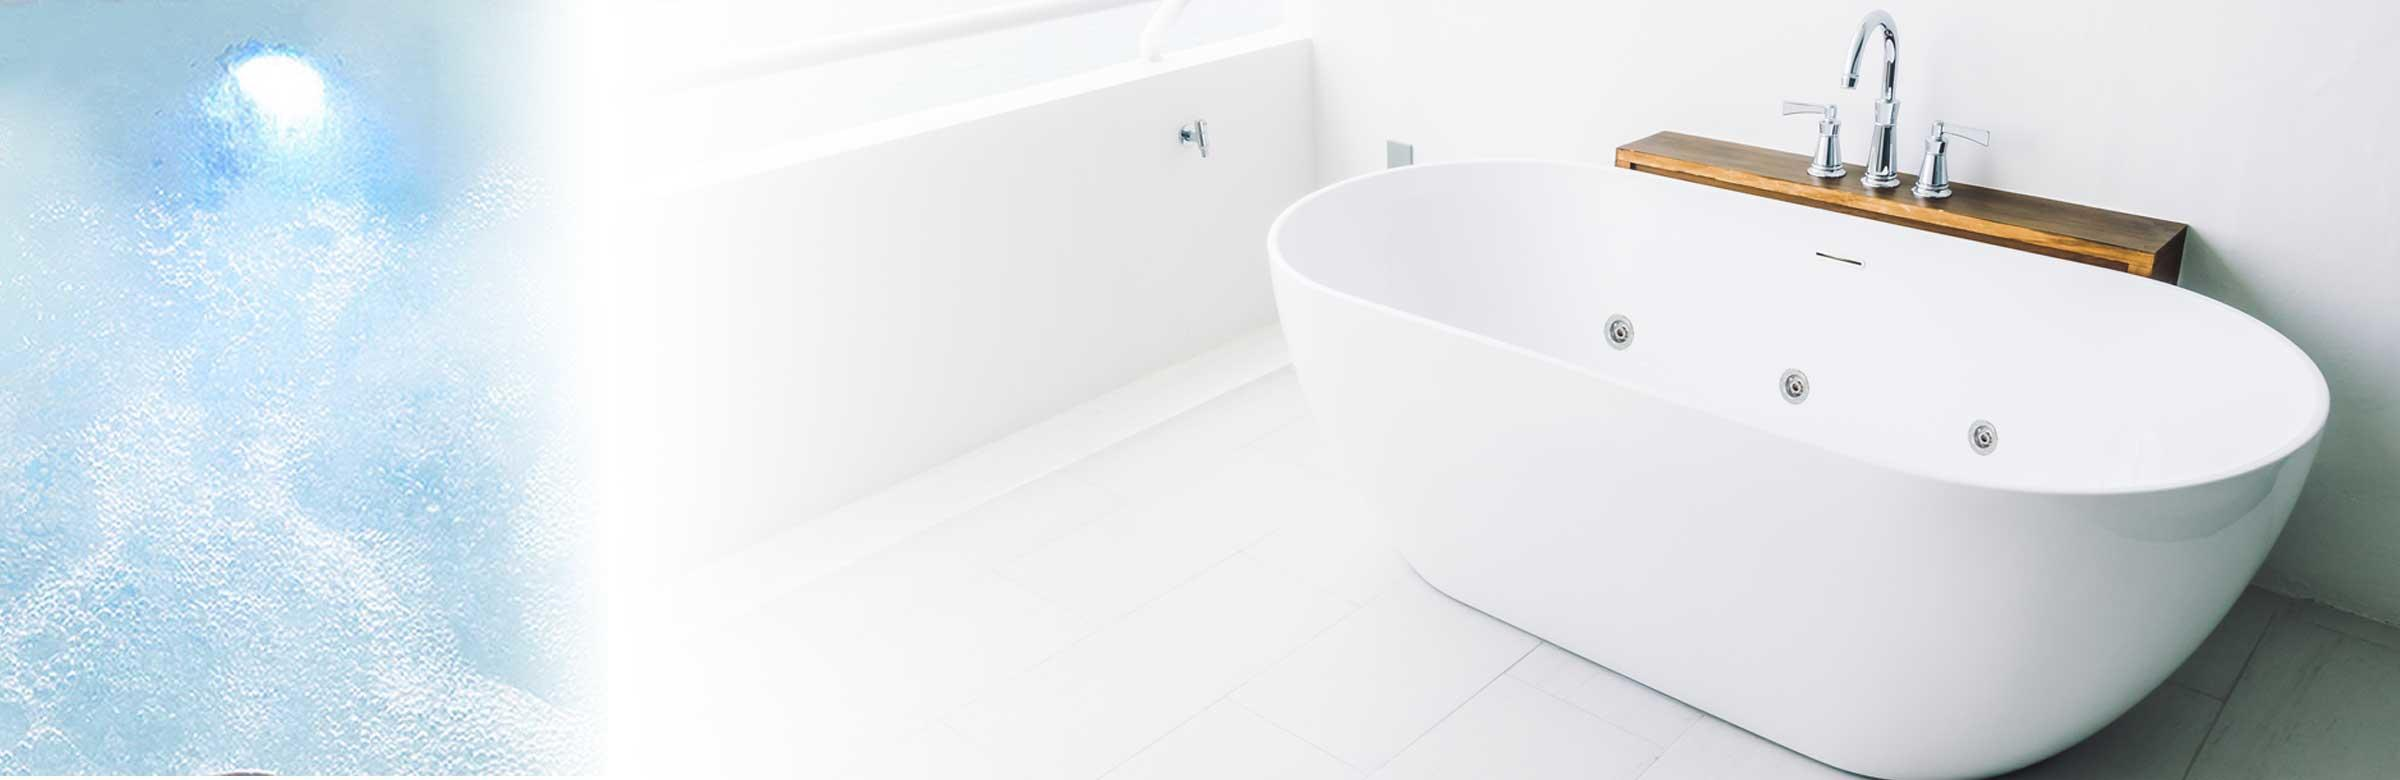 Why Chromotherapy Lights Might Just Be the Next Big Thing in Bathrooms